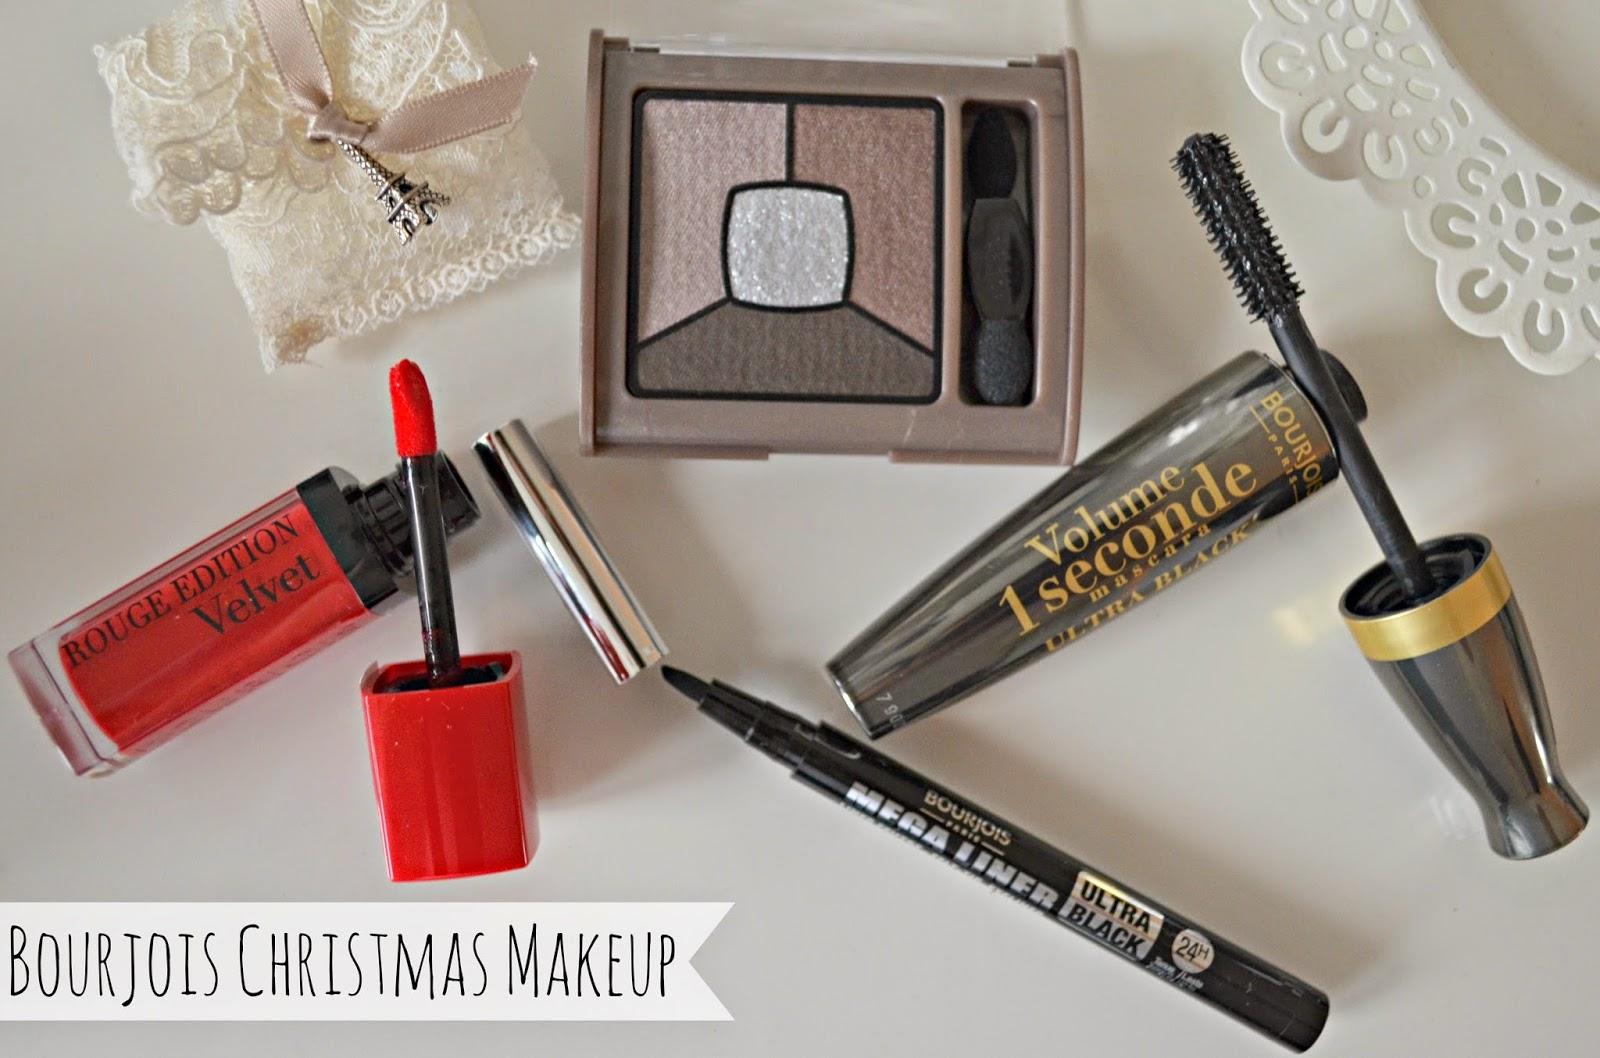 Bourjois christmas makeup